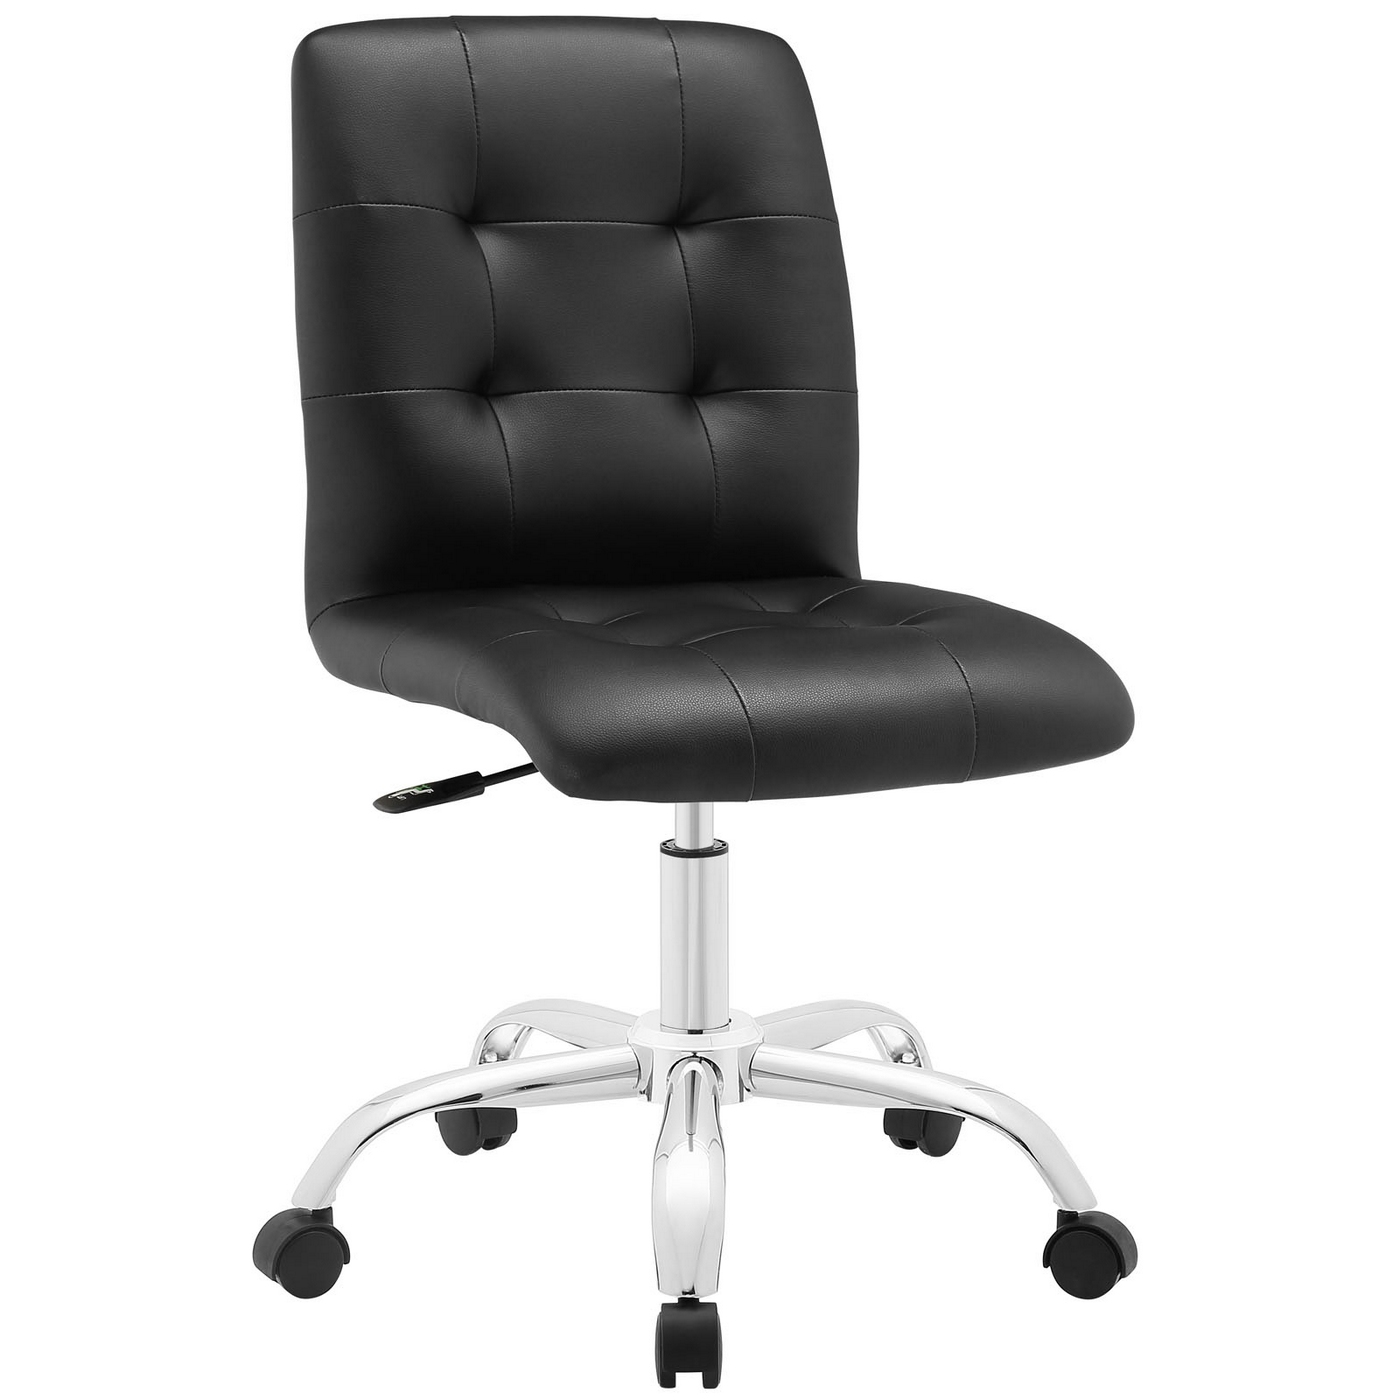 b1560 boss armless mid back leather office task chair task chairs